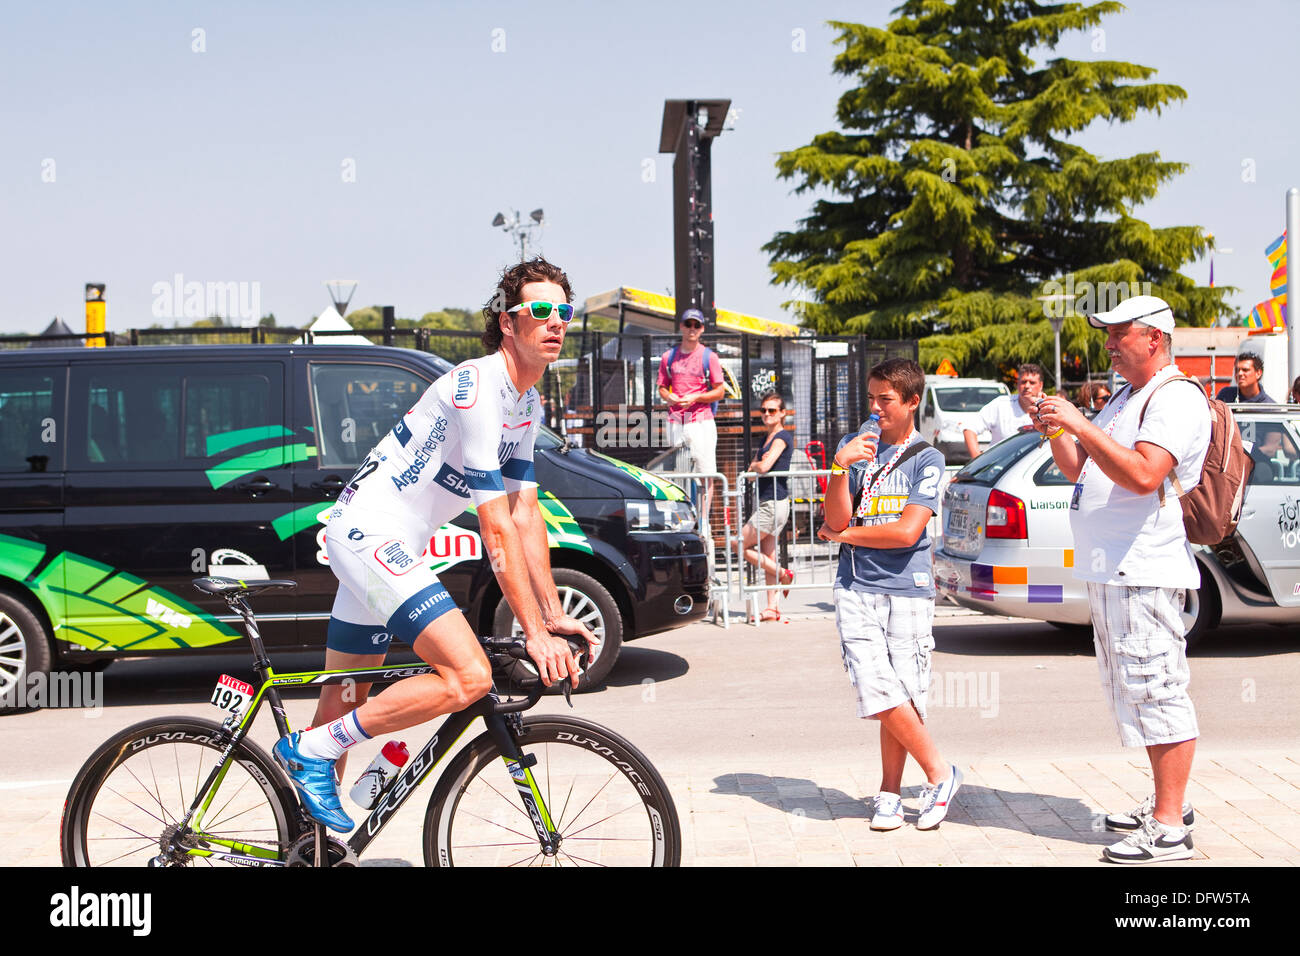 Roy Curvers of Team Argos-Shimano during the warm up of the 13th stage of the Tour de France, Tours. - Stock Image